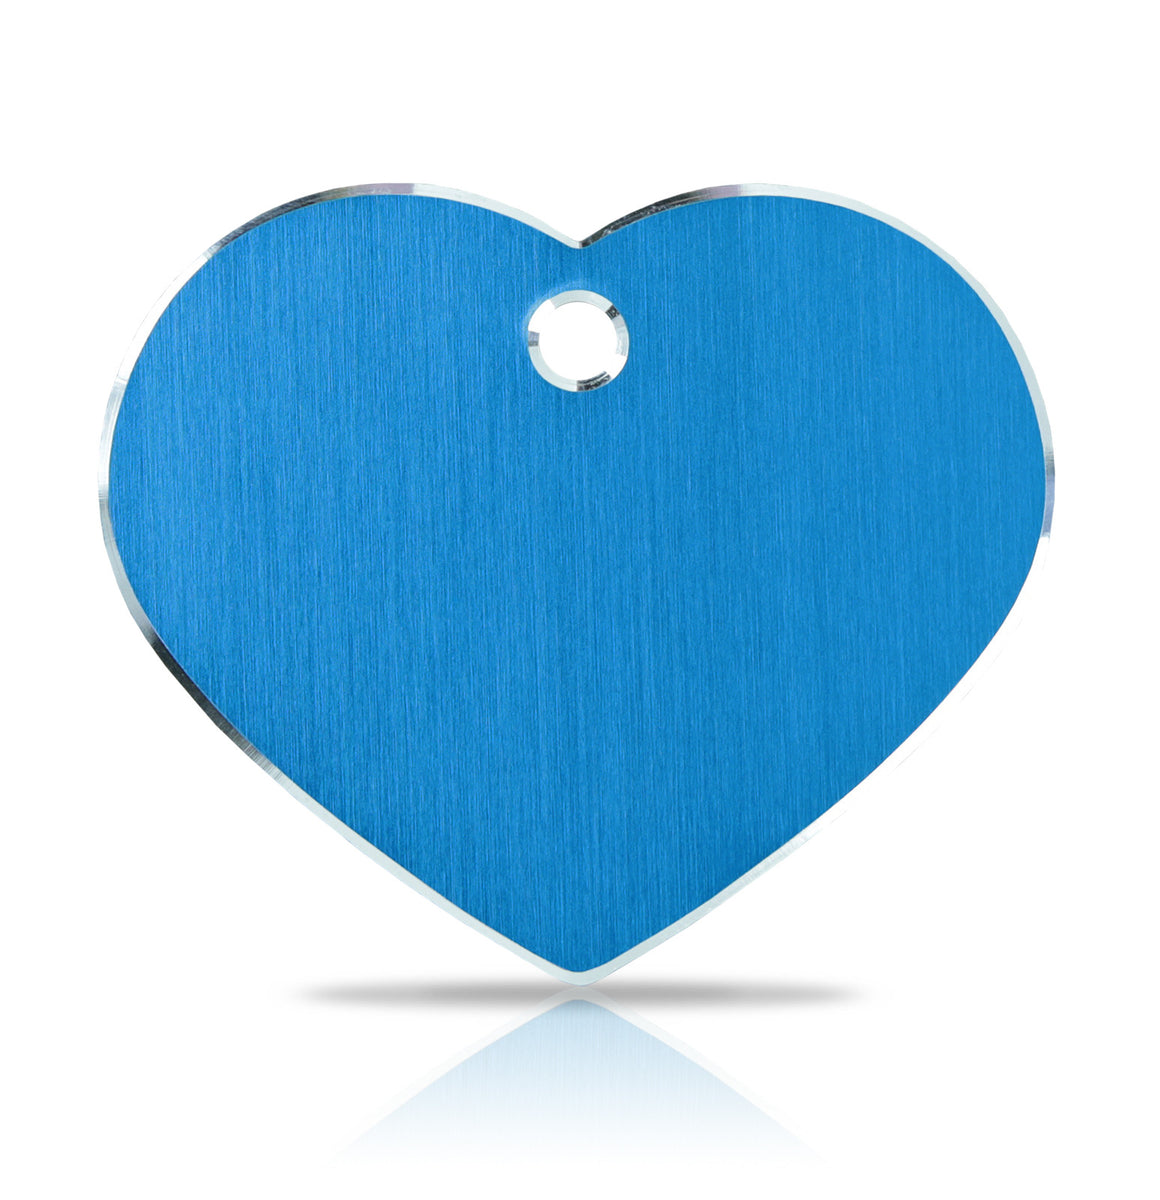 TaggIT Hi-Line Large Heart Blue Aluminum iMarc Pet Tag